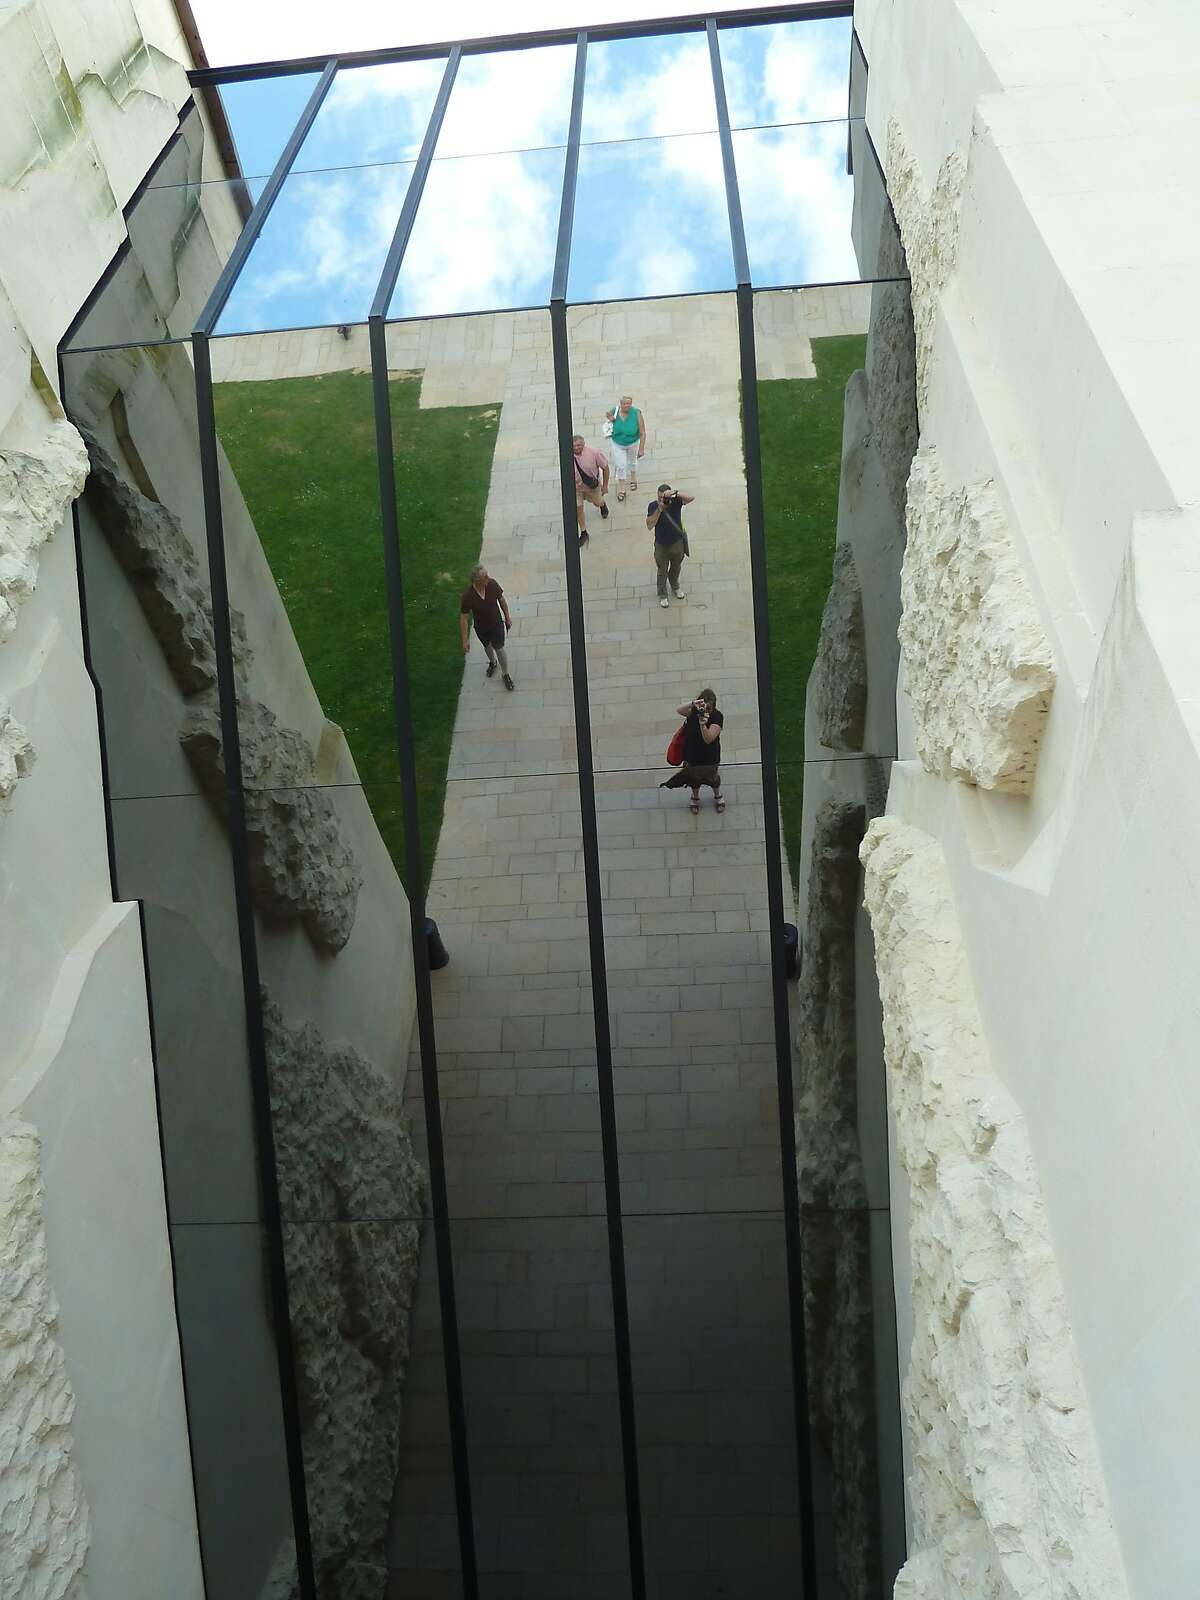 Visitors are reflected in the mirrors of the rift-like entrance at the Caen Memorial Centre for History and Peace. The museum is a few miles from the some of the landing beaches used in the Invasion of Normandy in WW II.